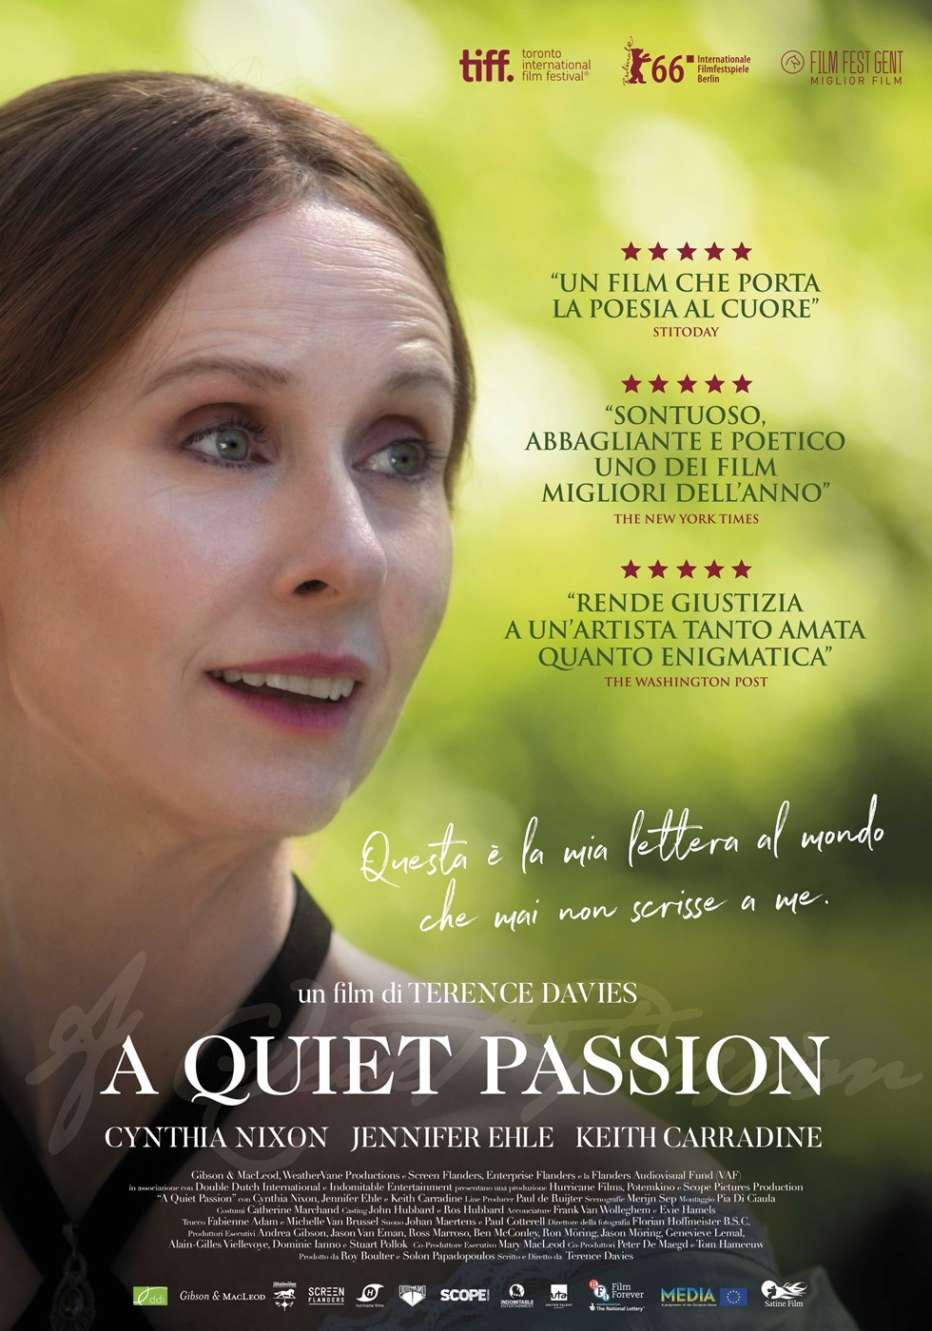 A-Quiet-Passion-2016-Terence-Davies-009.jpg